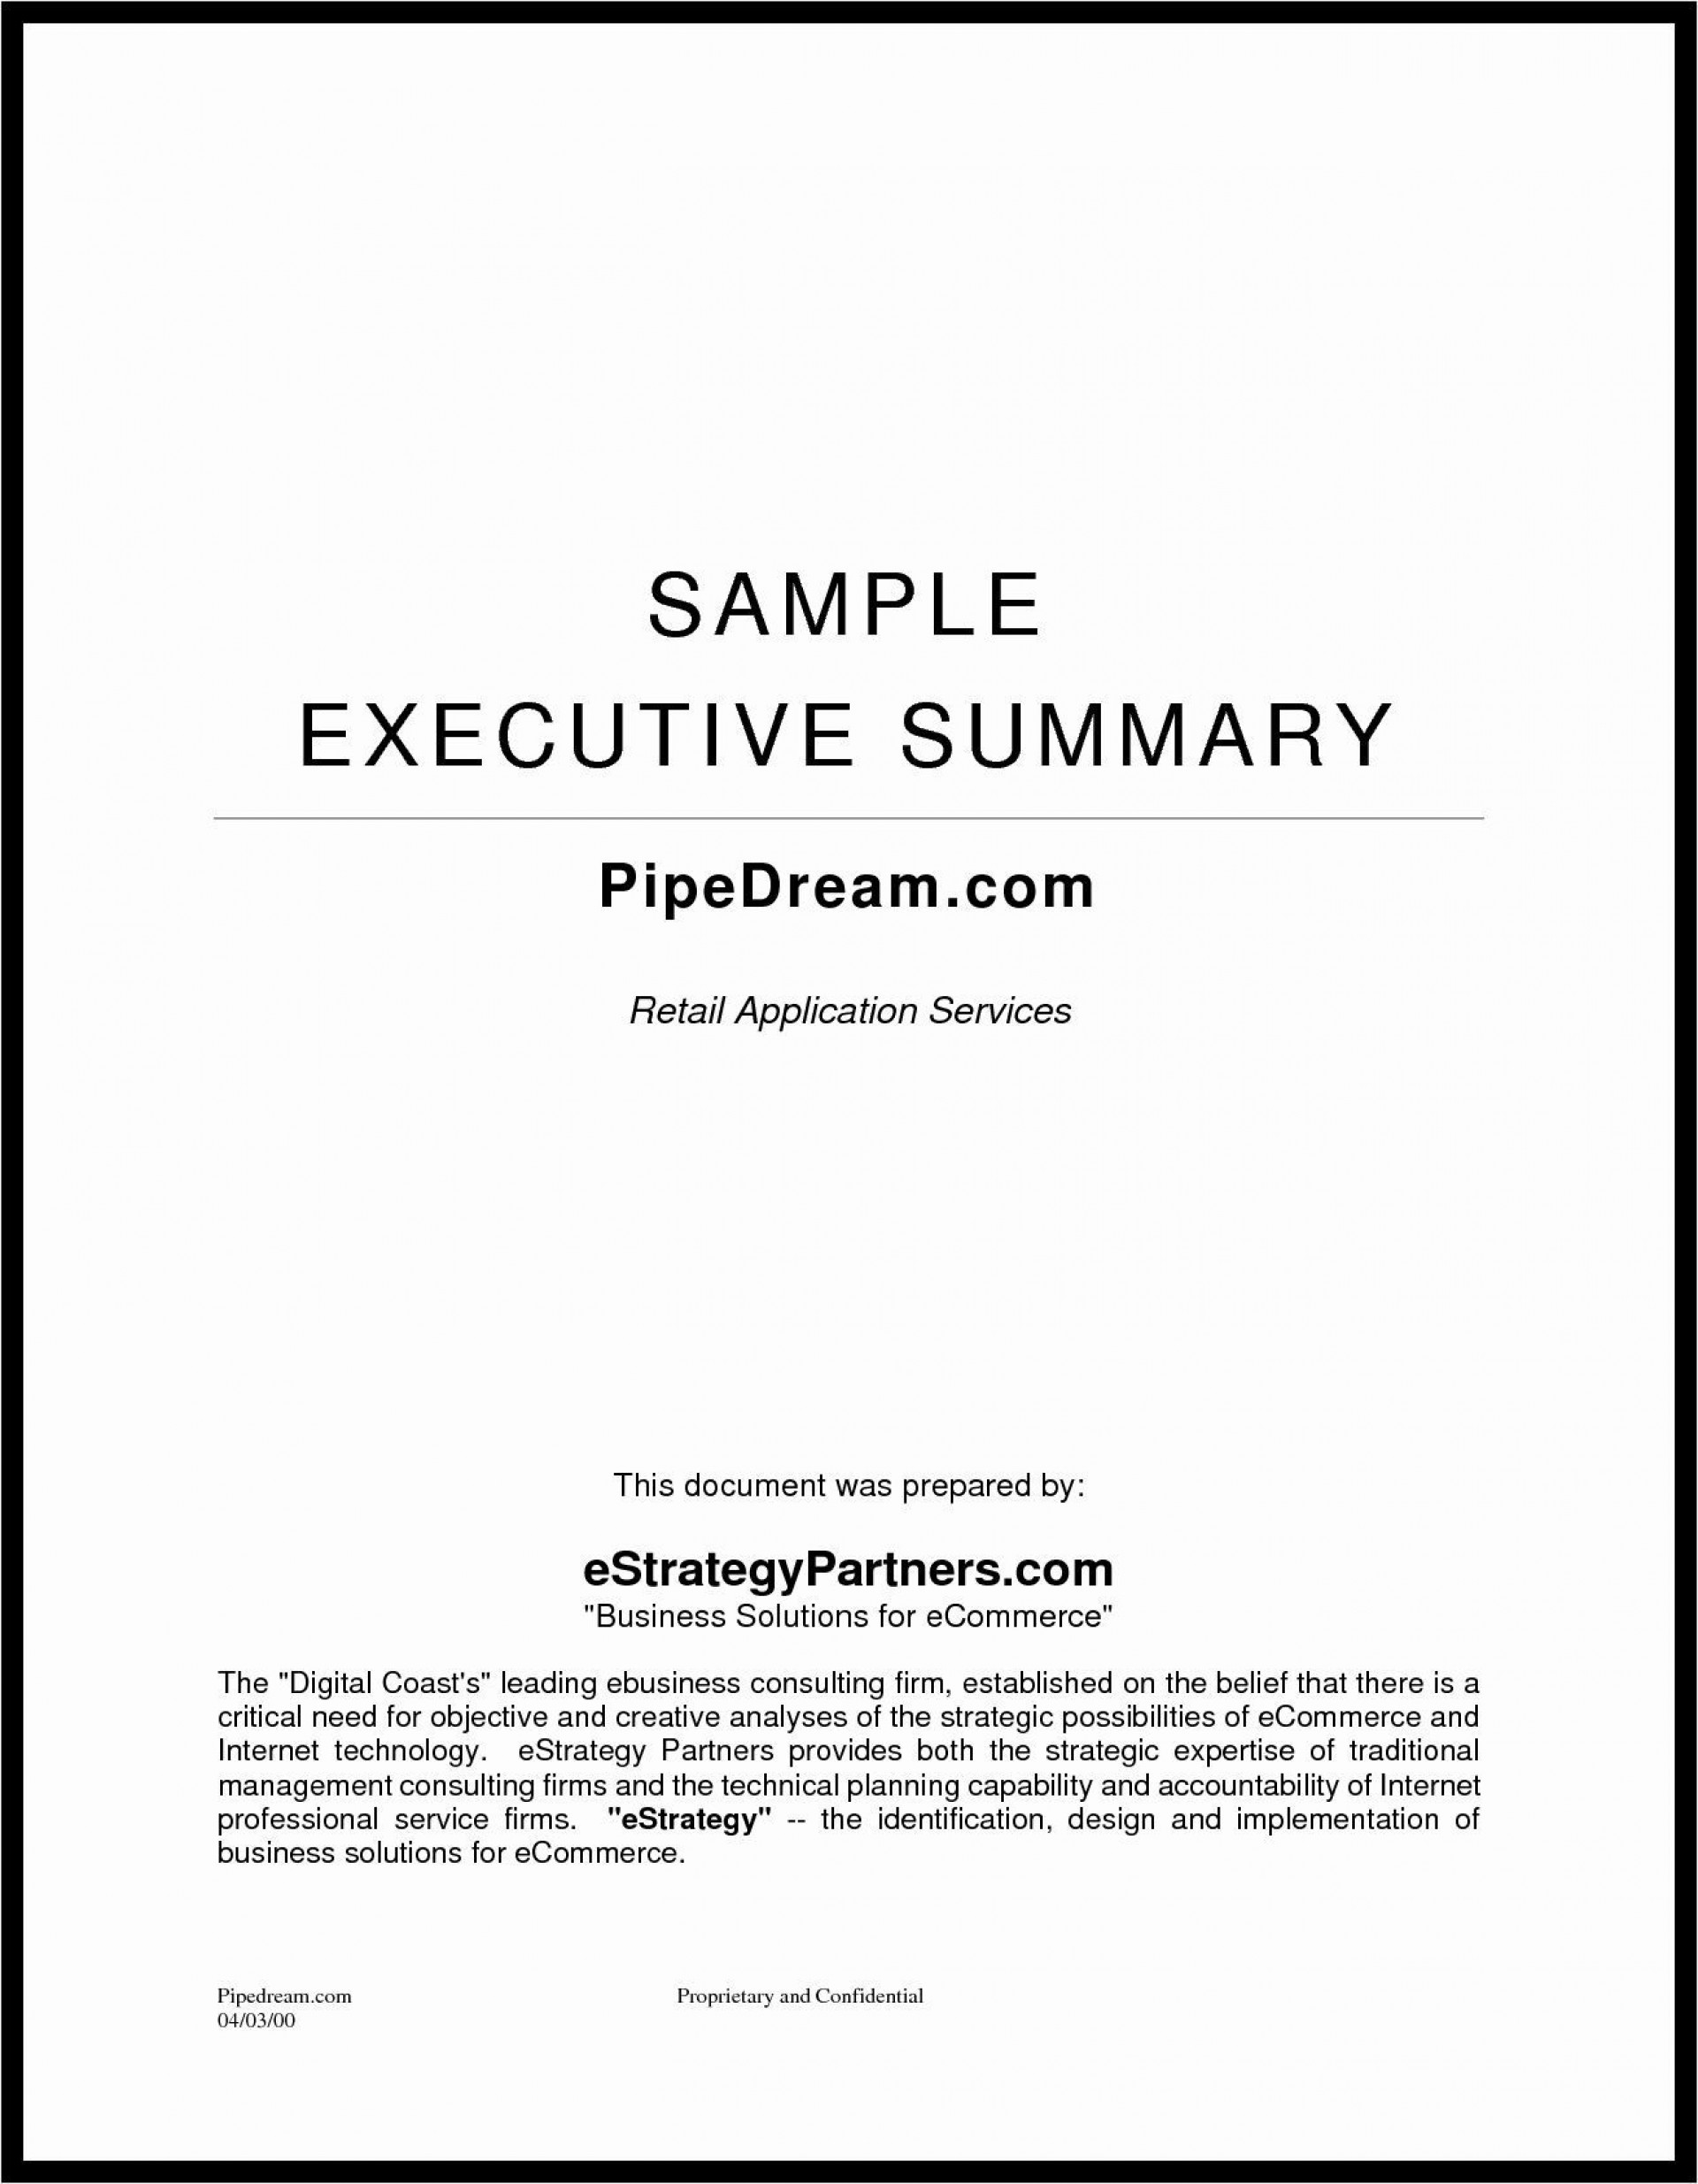 007 Remarkable Executive Summary Template Word Free Inspiration 1920